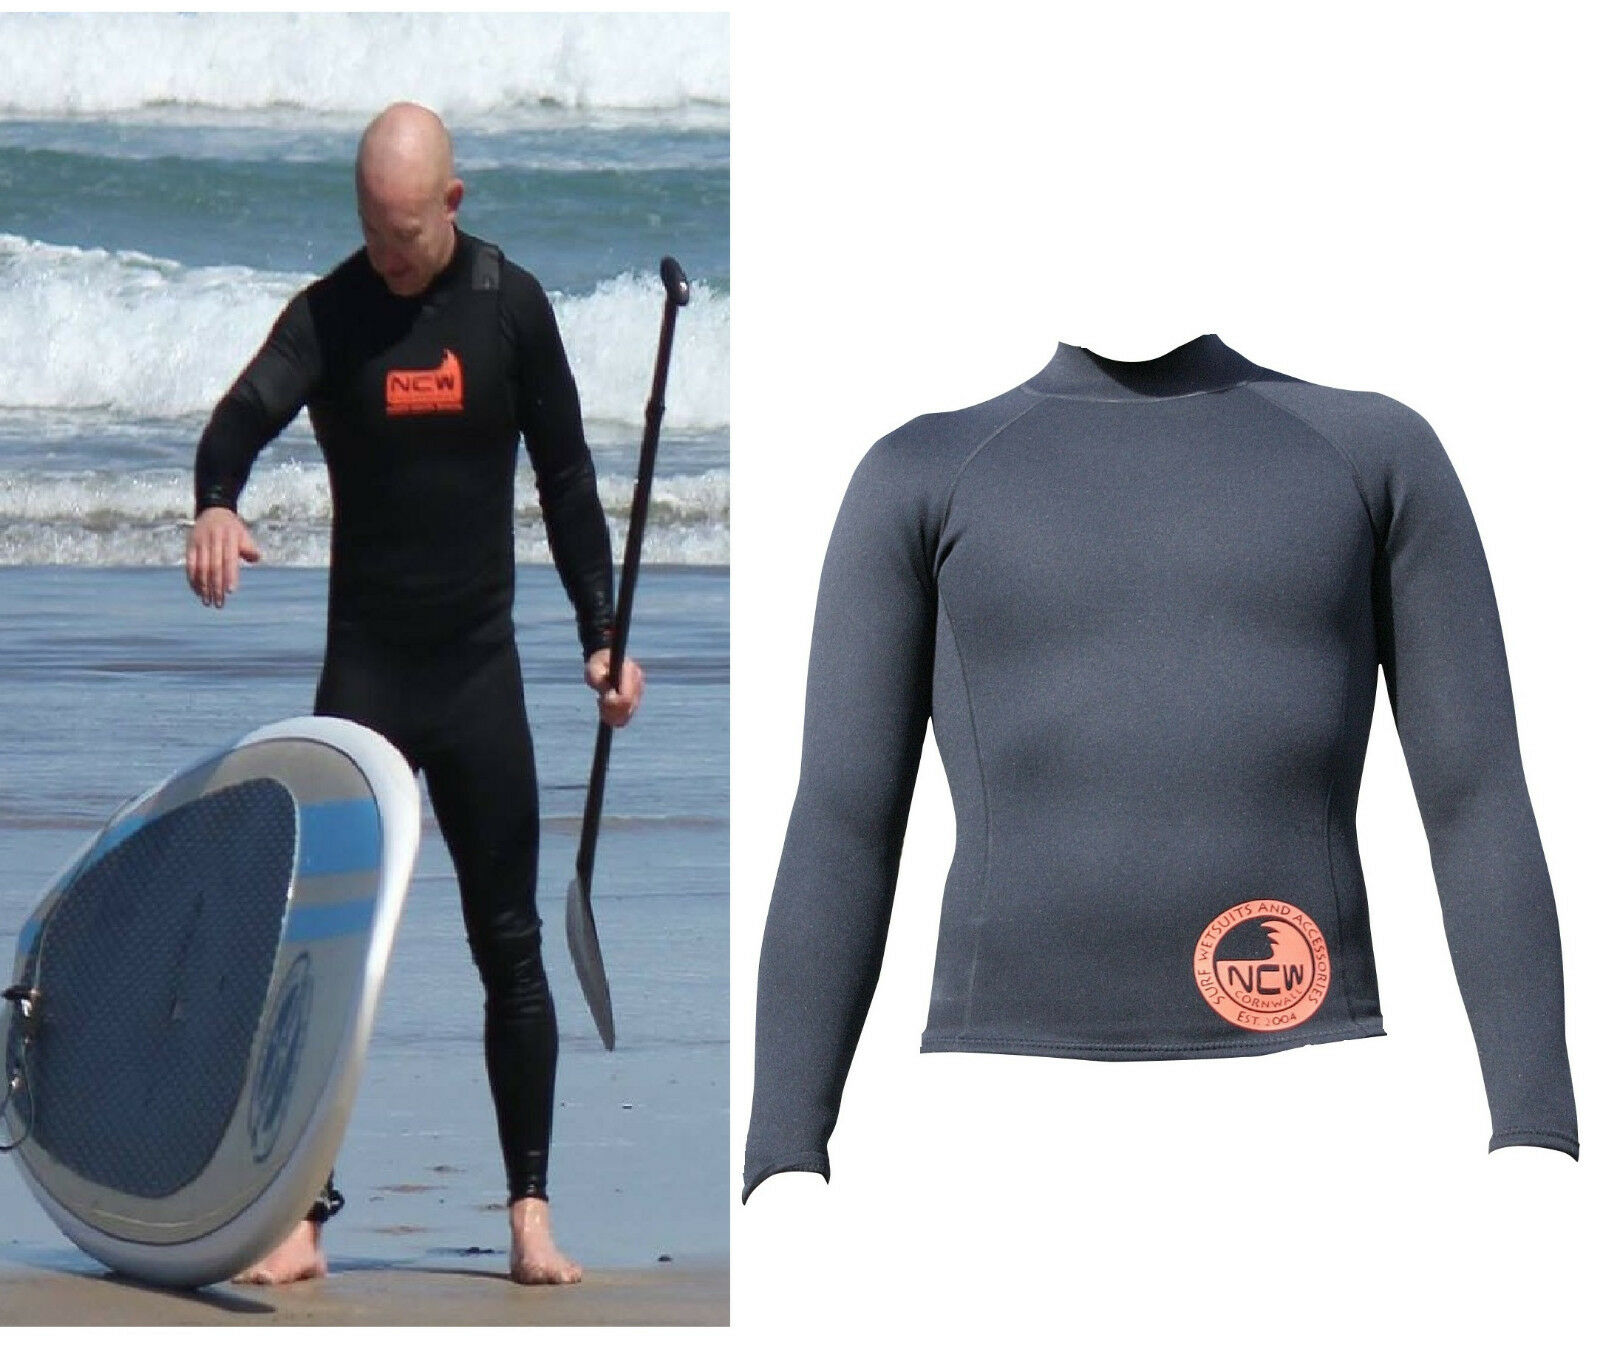 GREAT FOR SUP 1.5 mm thermal neoprene long sleeve rash vest VERY WARM. ALL SIZES